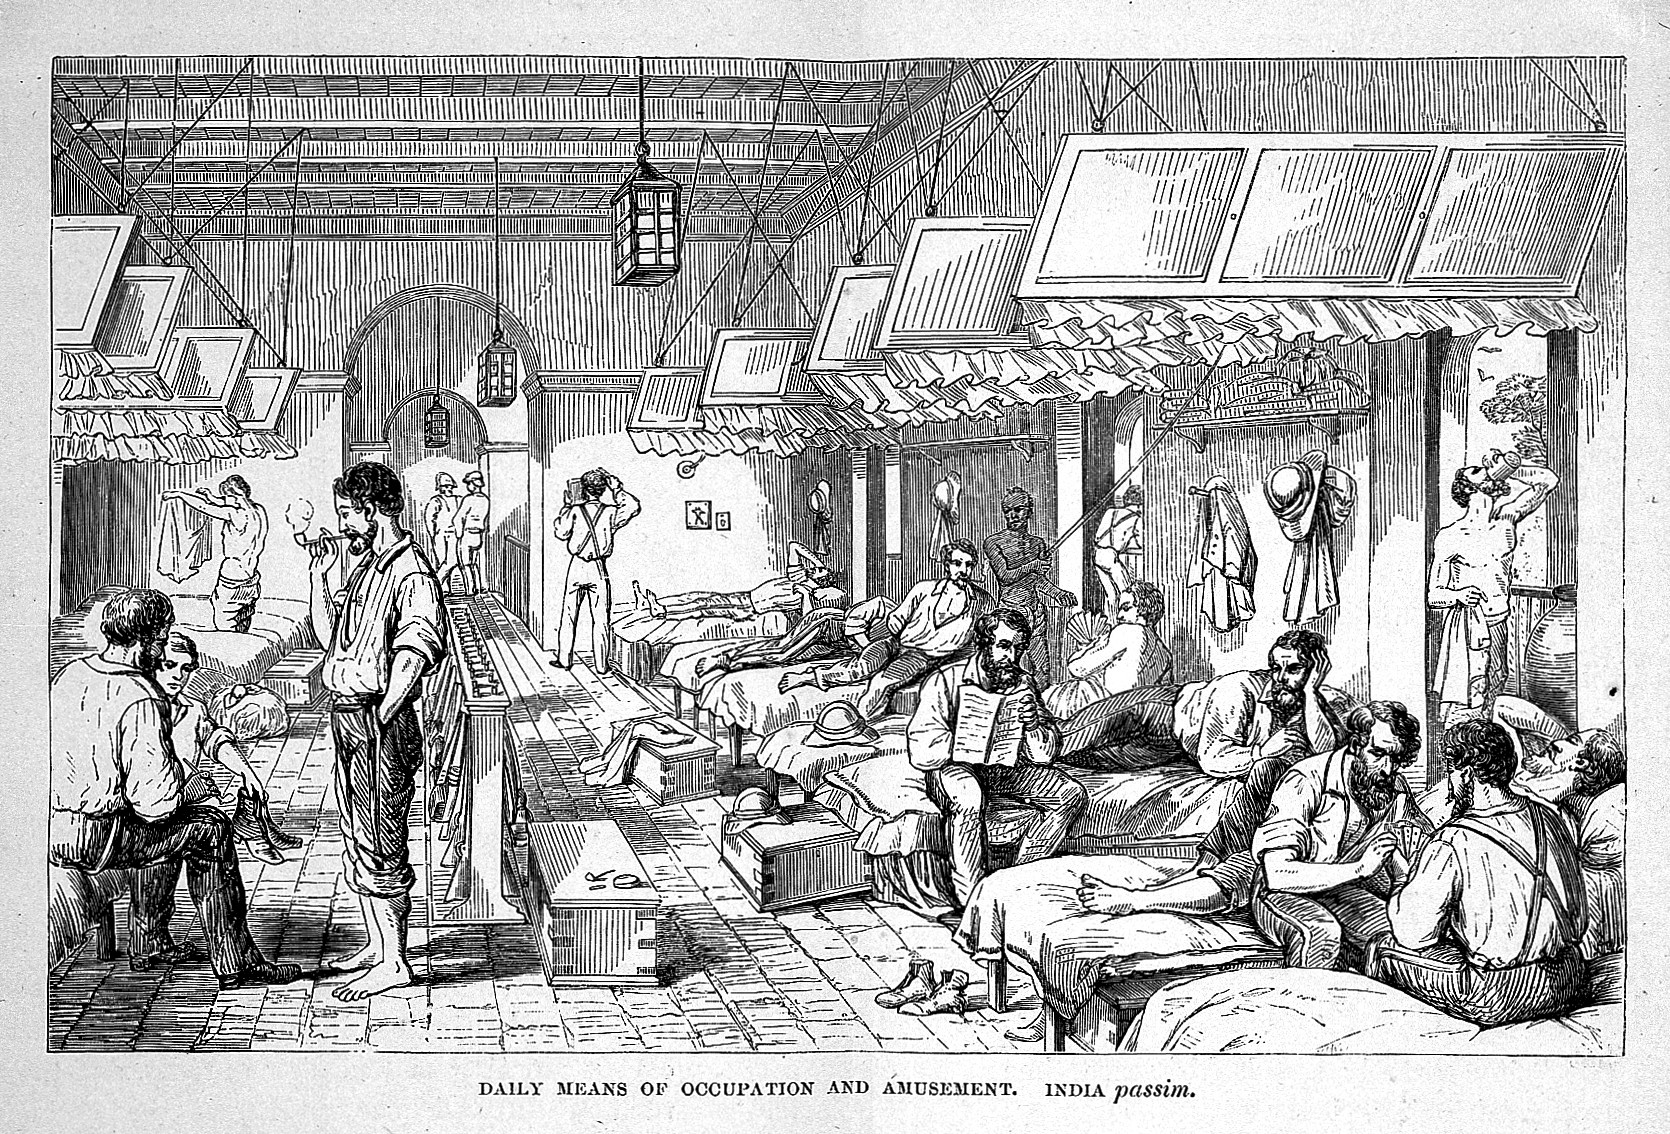 •	Fig. 4: Illumination of British Troops Barracks in India, n.d. The British Army at rest in their barracks; Wellcome Collection (2018-04-03): https://wellcomecollection.org/works/x9t2xex9; CC-BY.